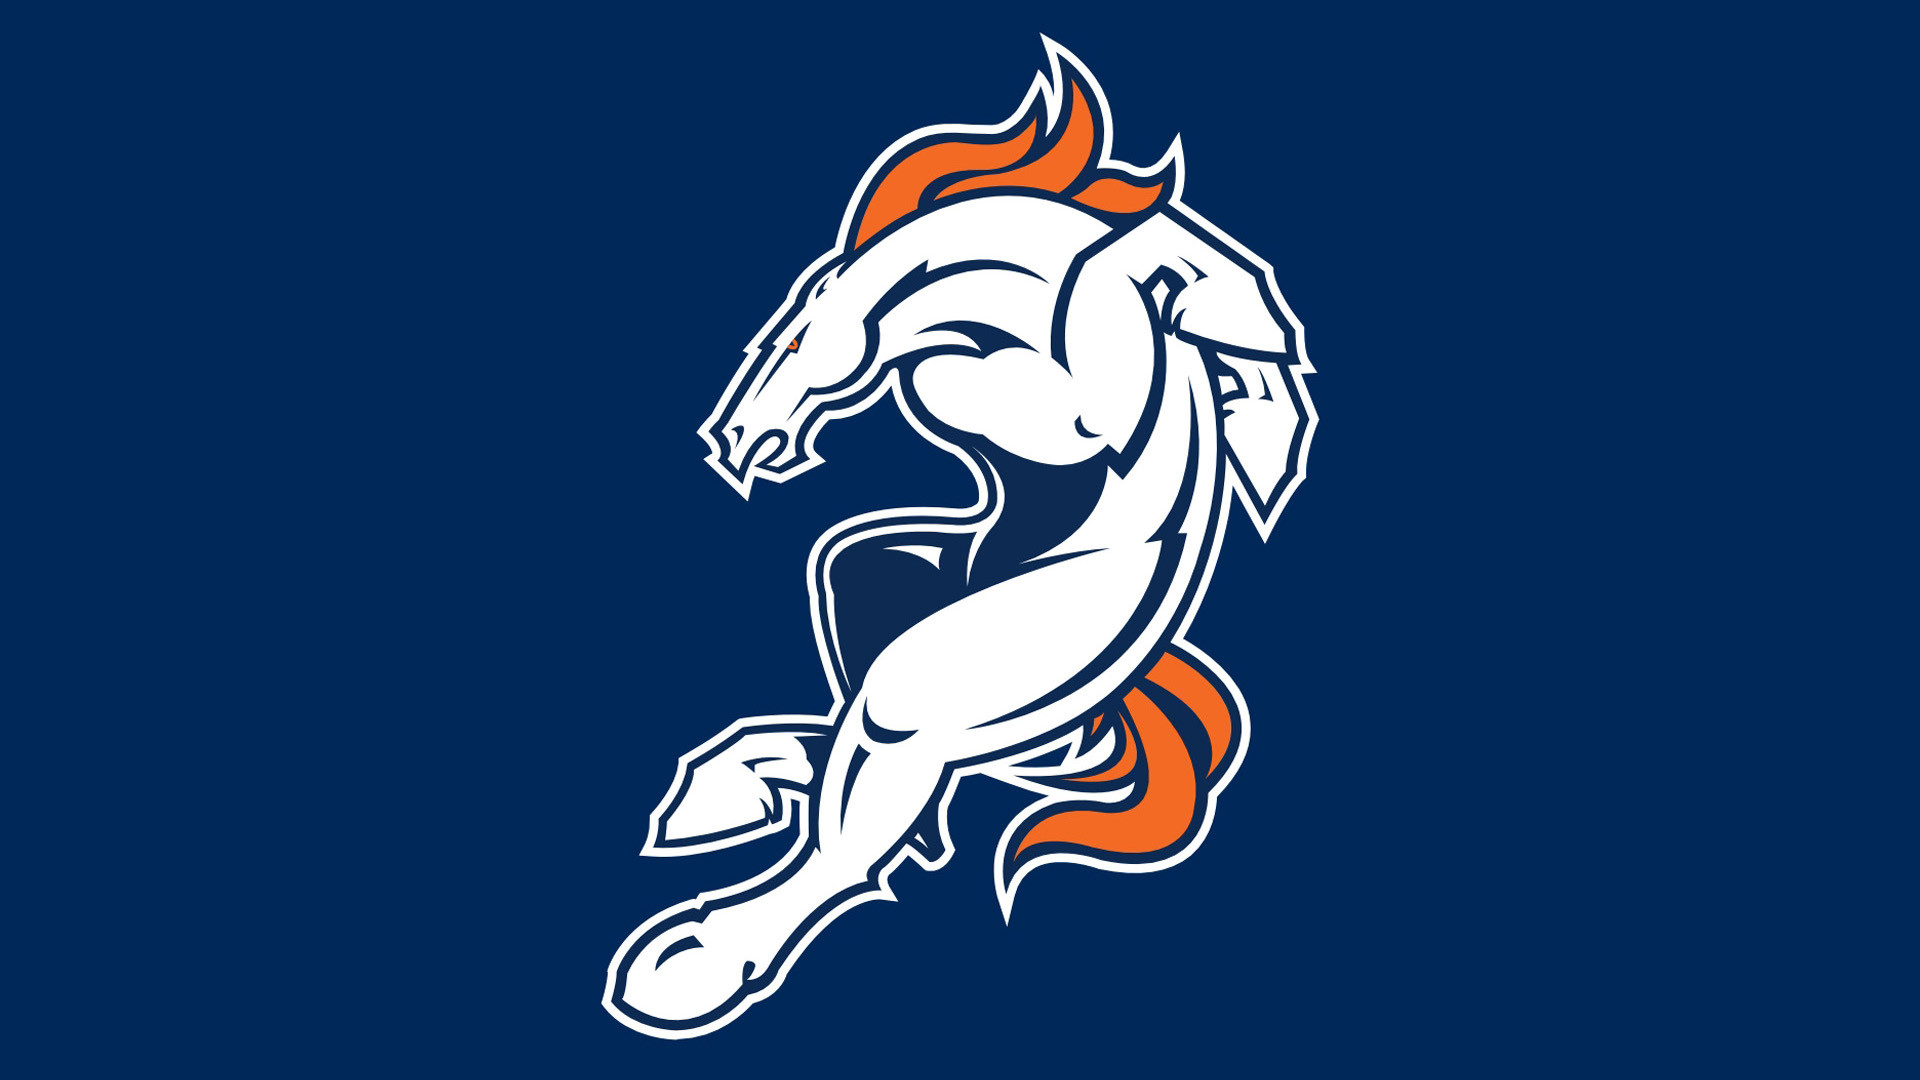 Res: 1920x1080, Published February 14, 2010 at 1920 × 1080 in NFL Team Logos Wallpapers ...